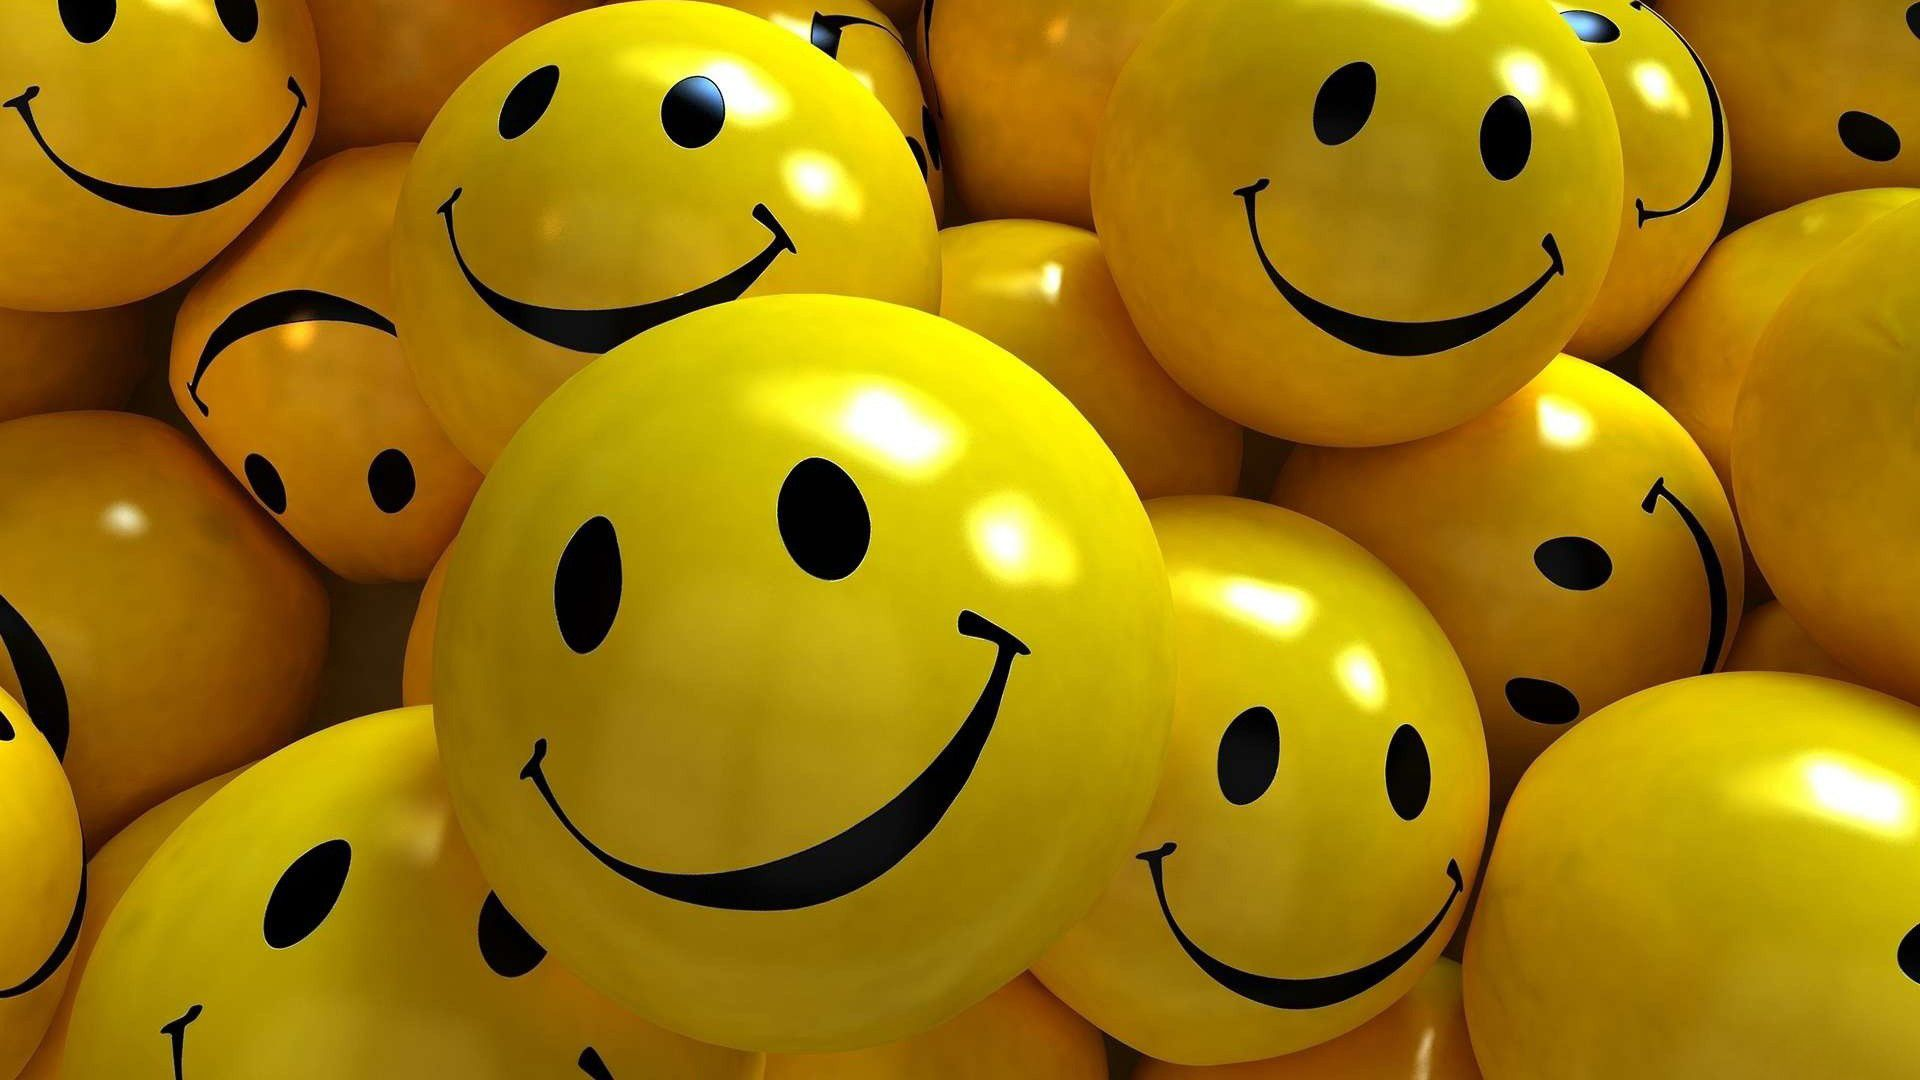 Free Download 3d Happy Faces Smile 3d Happy Faces Smile For Desktop You Can Download This Images In Here Pl Happy Wallpaper Smile Images Whatsapp Dp Images